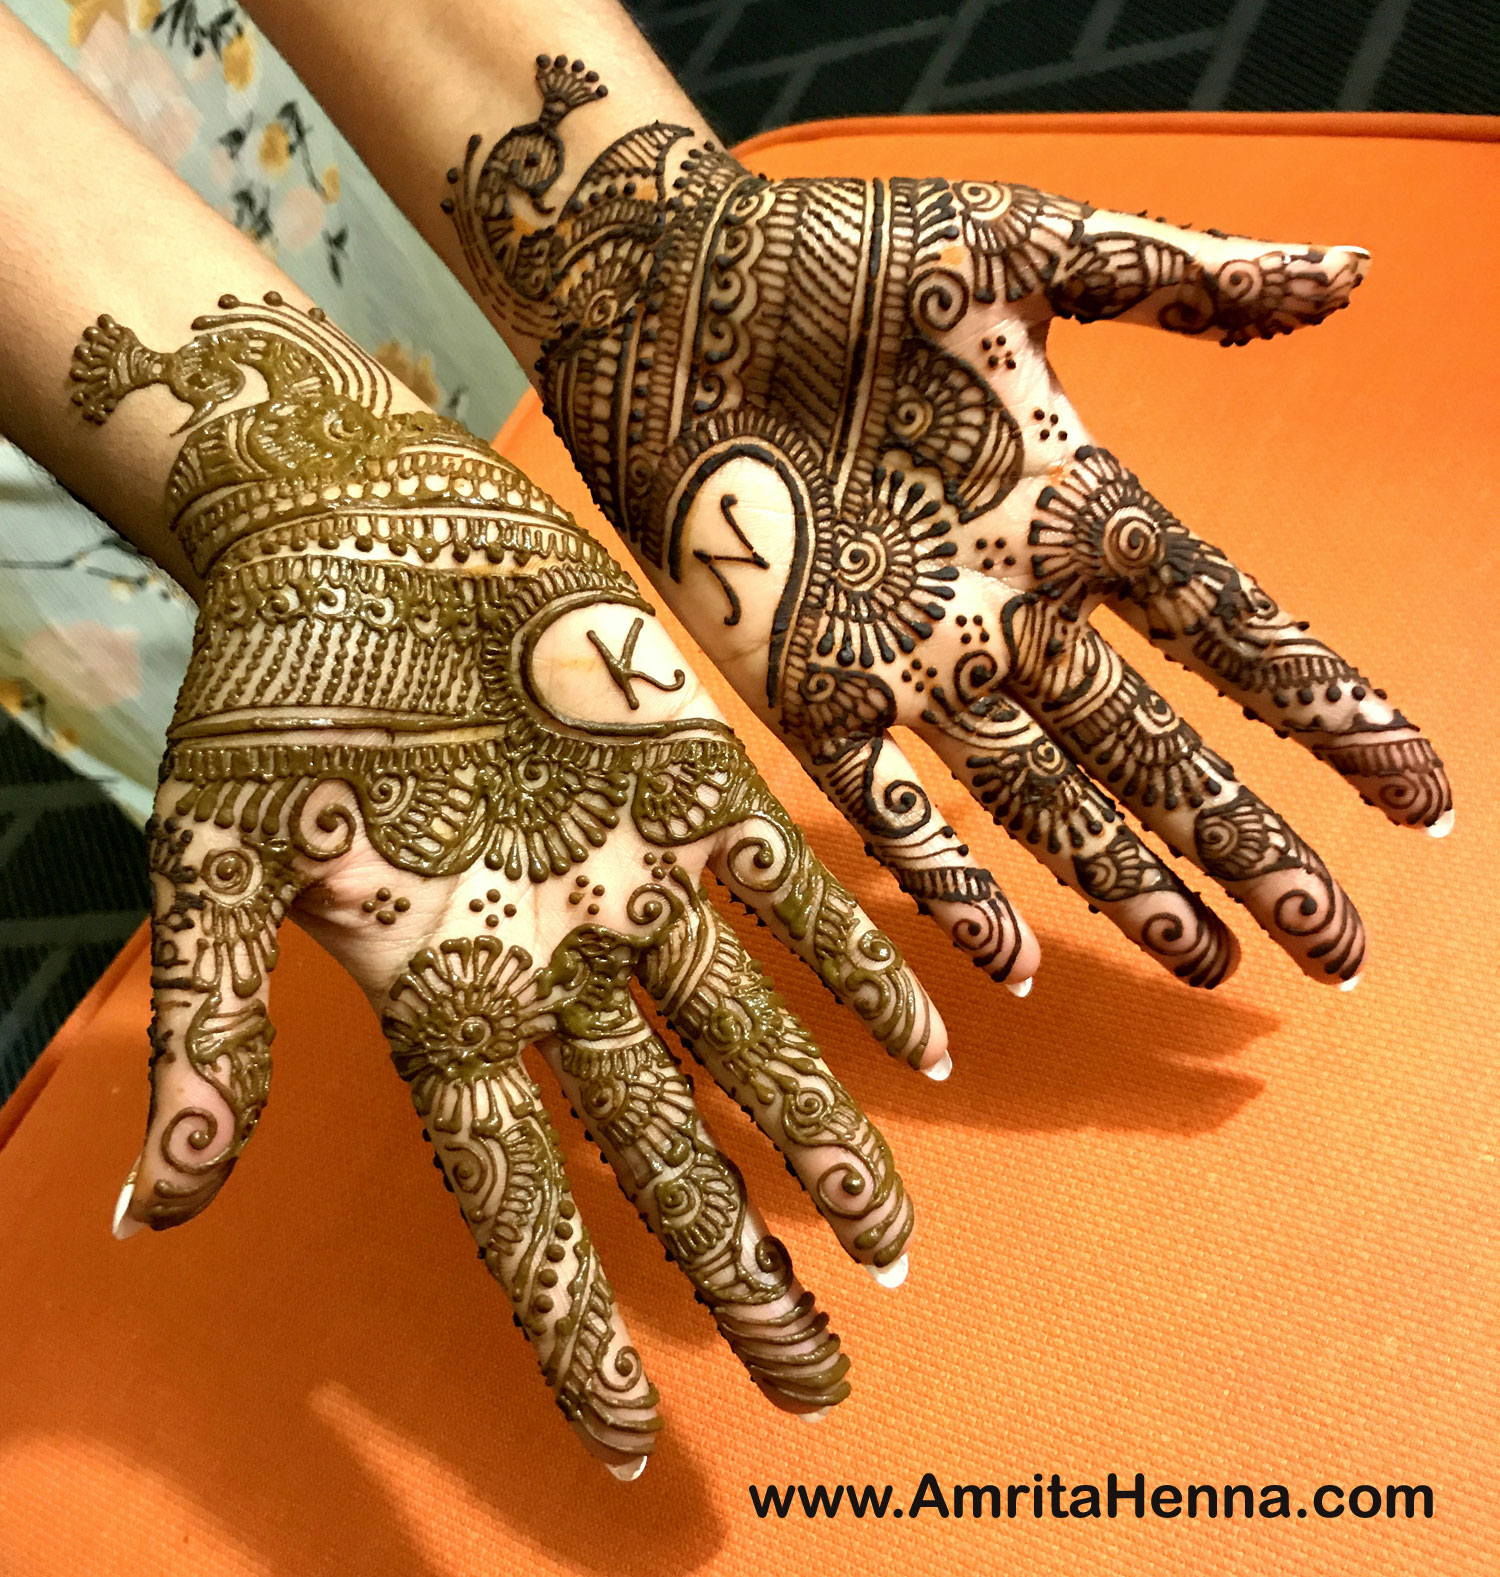 TOP 10 TEEJ HENNA DESIGNS - 10 BEST LATEST MEHNDI DESIGNS FOR TEEJ FESTIVAL - 10 MUST TRY MEHENDI DESIGNS FOR HARTALIKA TEEJ - NEW AND UNIQUE TRADITIONAL MEHANDI DESIGNS FOR TEEJ FESTIVALS - STYLISH HENNA DESIGNS FOR INDIAN FESTIVALS - 10 TRADITIONAL RAJASTHANI MEHENDI DESIGNS WITH PHOTOS - INDIAN WEDDINGS BRIDAL HENNA DESIGNS LATEST - TOP 10 TRADITIONAL MEHNDI DESIGNS FOR INDIAN TEEJ FESTIVAL - 10 INTRICATE HENNA DESIGNS FOR TEEJ - 10 NEW MARWARI STYLE MEHNDI DESIGNS FOR TEEJ - INDIAN HENNA DESIGNS IDEAS